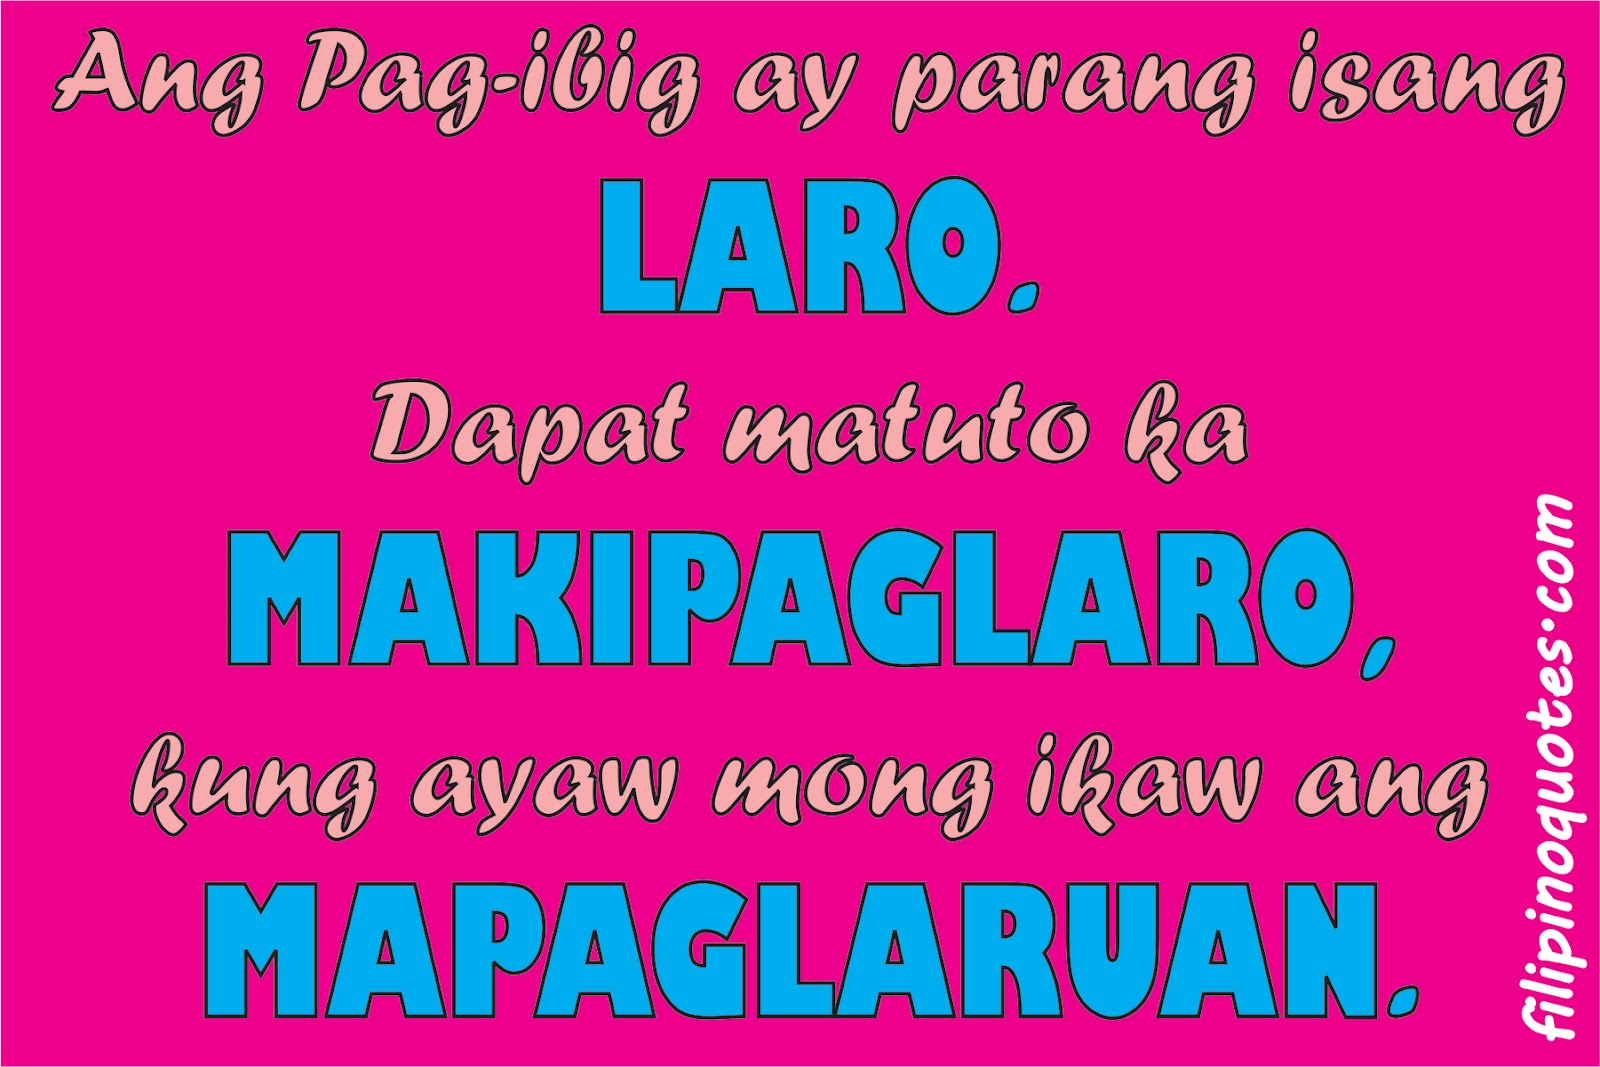 Filipino Funny Love Quotes : Tagalog Love Quotes (May 2012) - Tagalog Love Quotes